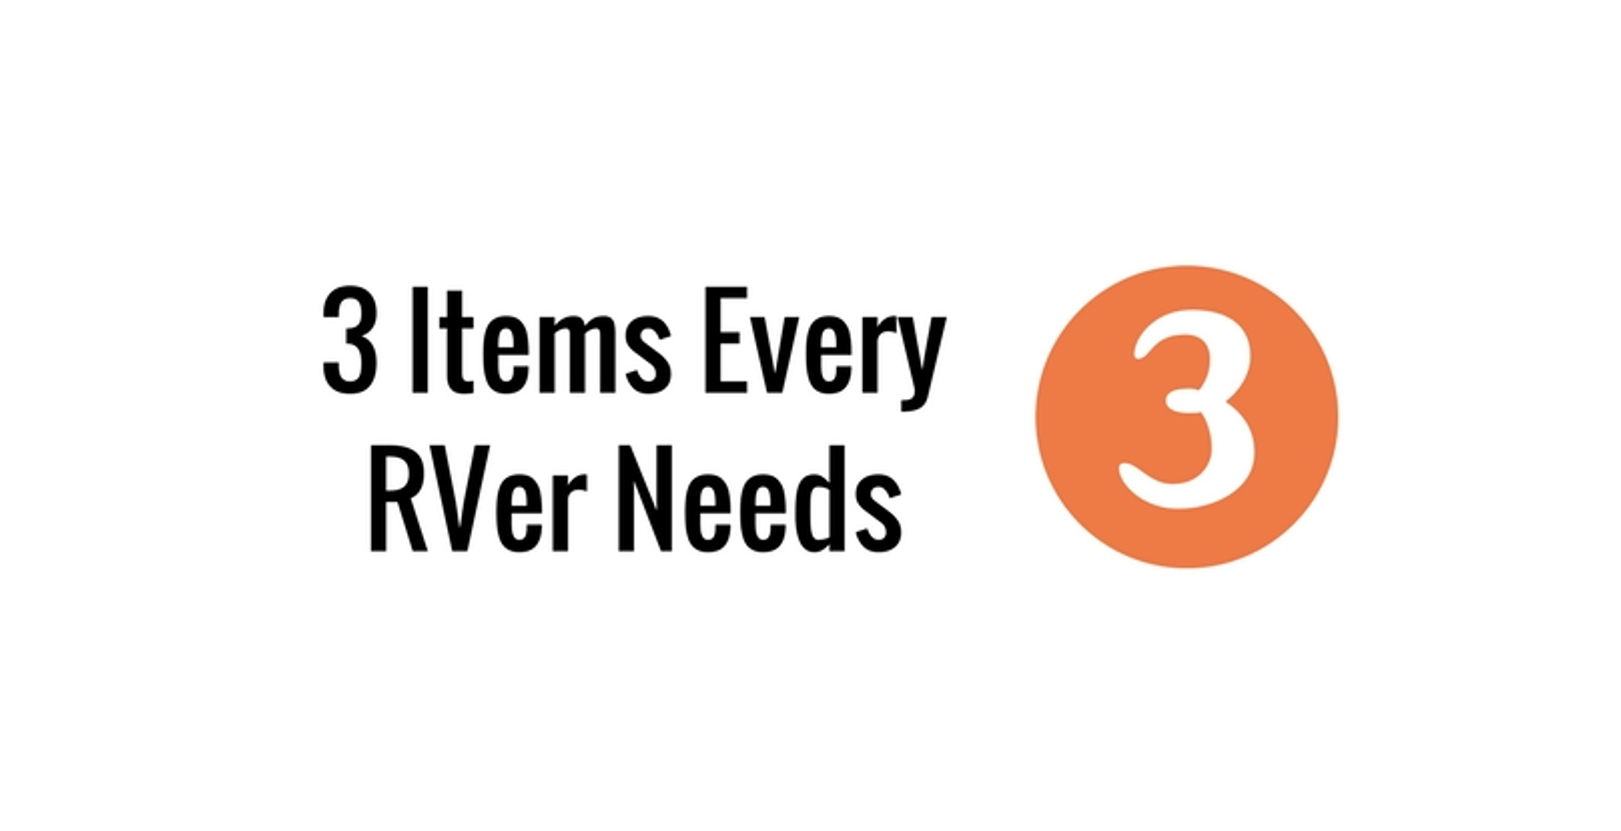 Three Items Every RVer Needs